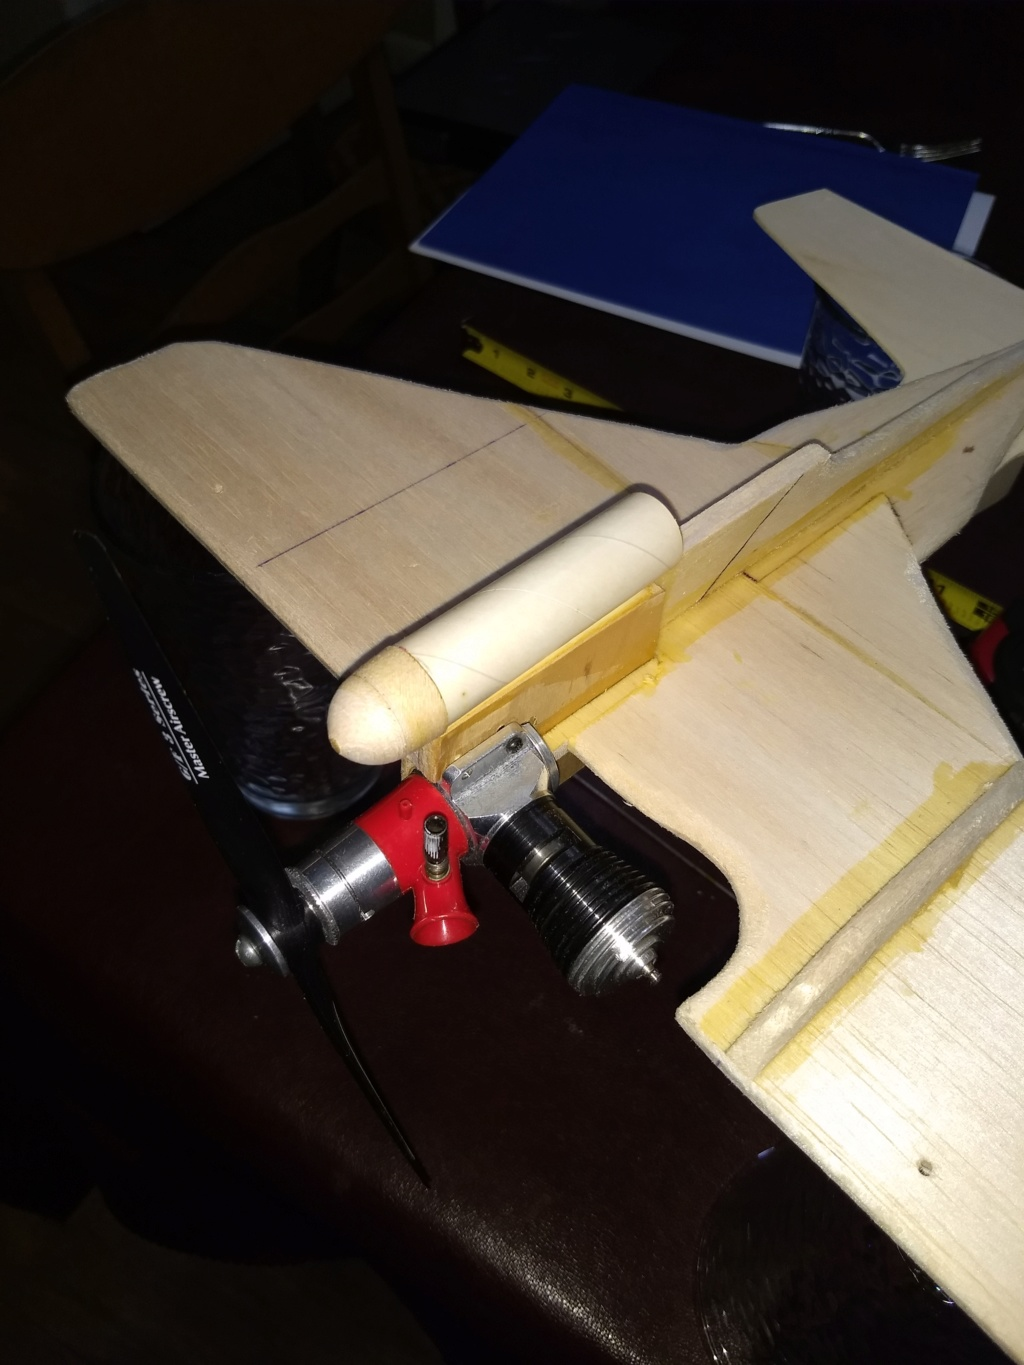 2019 CEF Run What YA Brung UNLIMITED speed contest Build Log by 944_Jim - Page 2 Img_2130